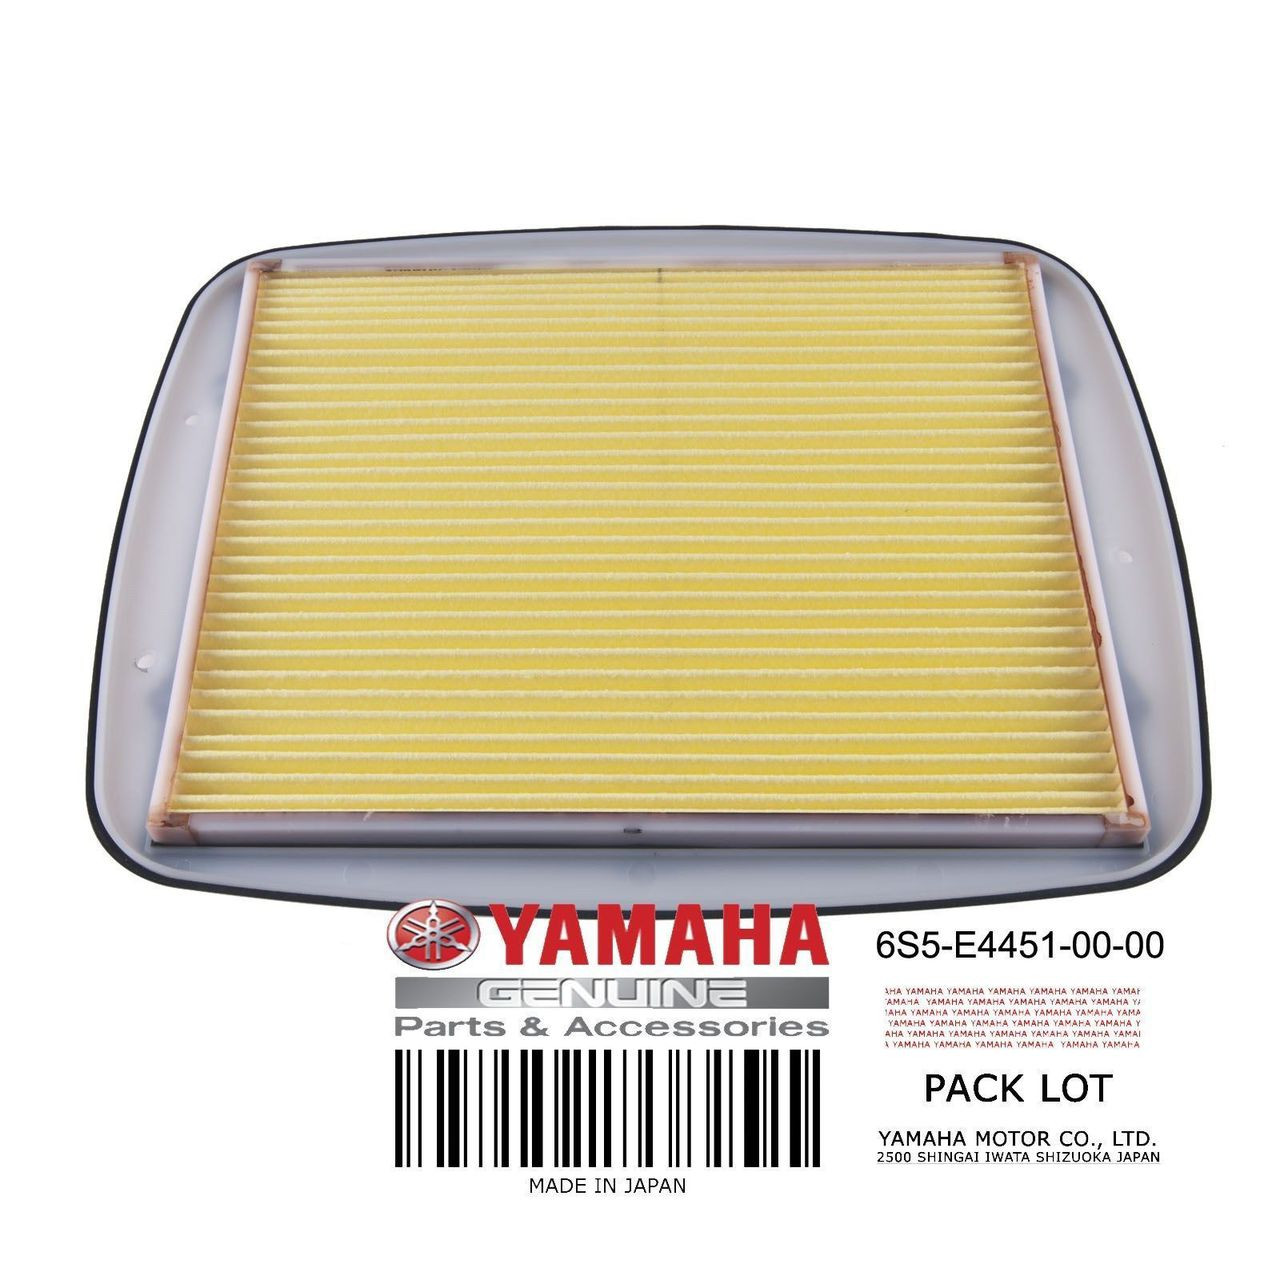 Air Filters Filtros Aire nypso Filtro Aire Variador Yamaha majesty-teo s-maxster //Air Filter Pulley Yamaha Majesty